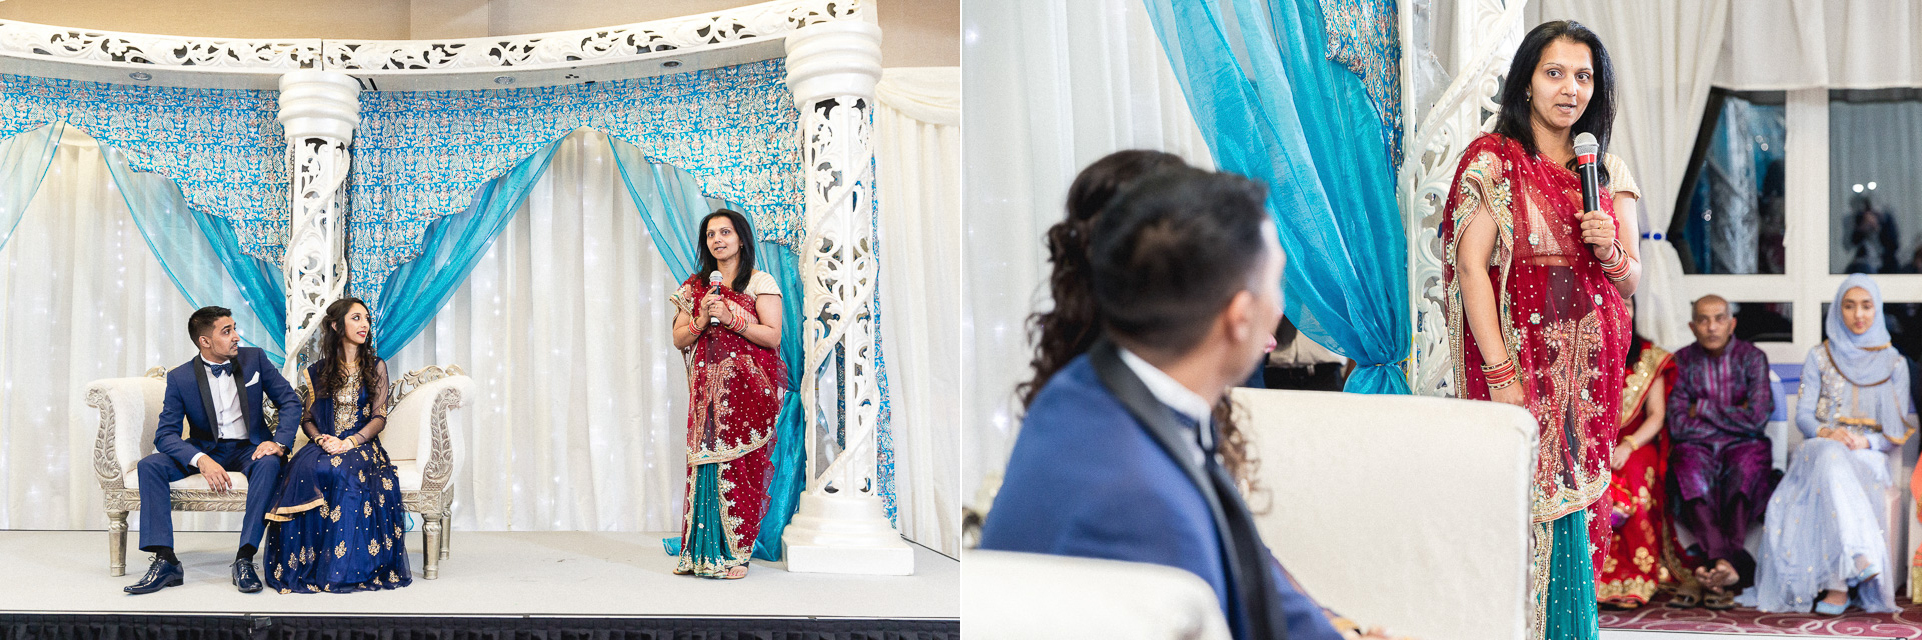 London_Wedding_Photographer_Natural_Candid_Asian_Hana&Maulic-192.jpg